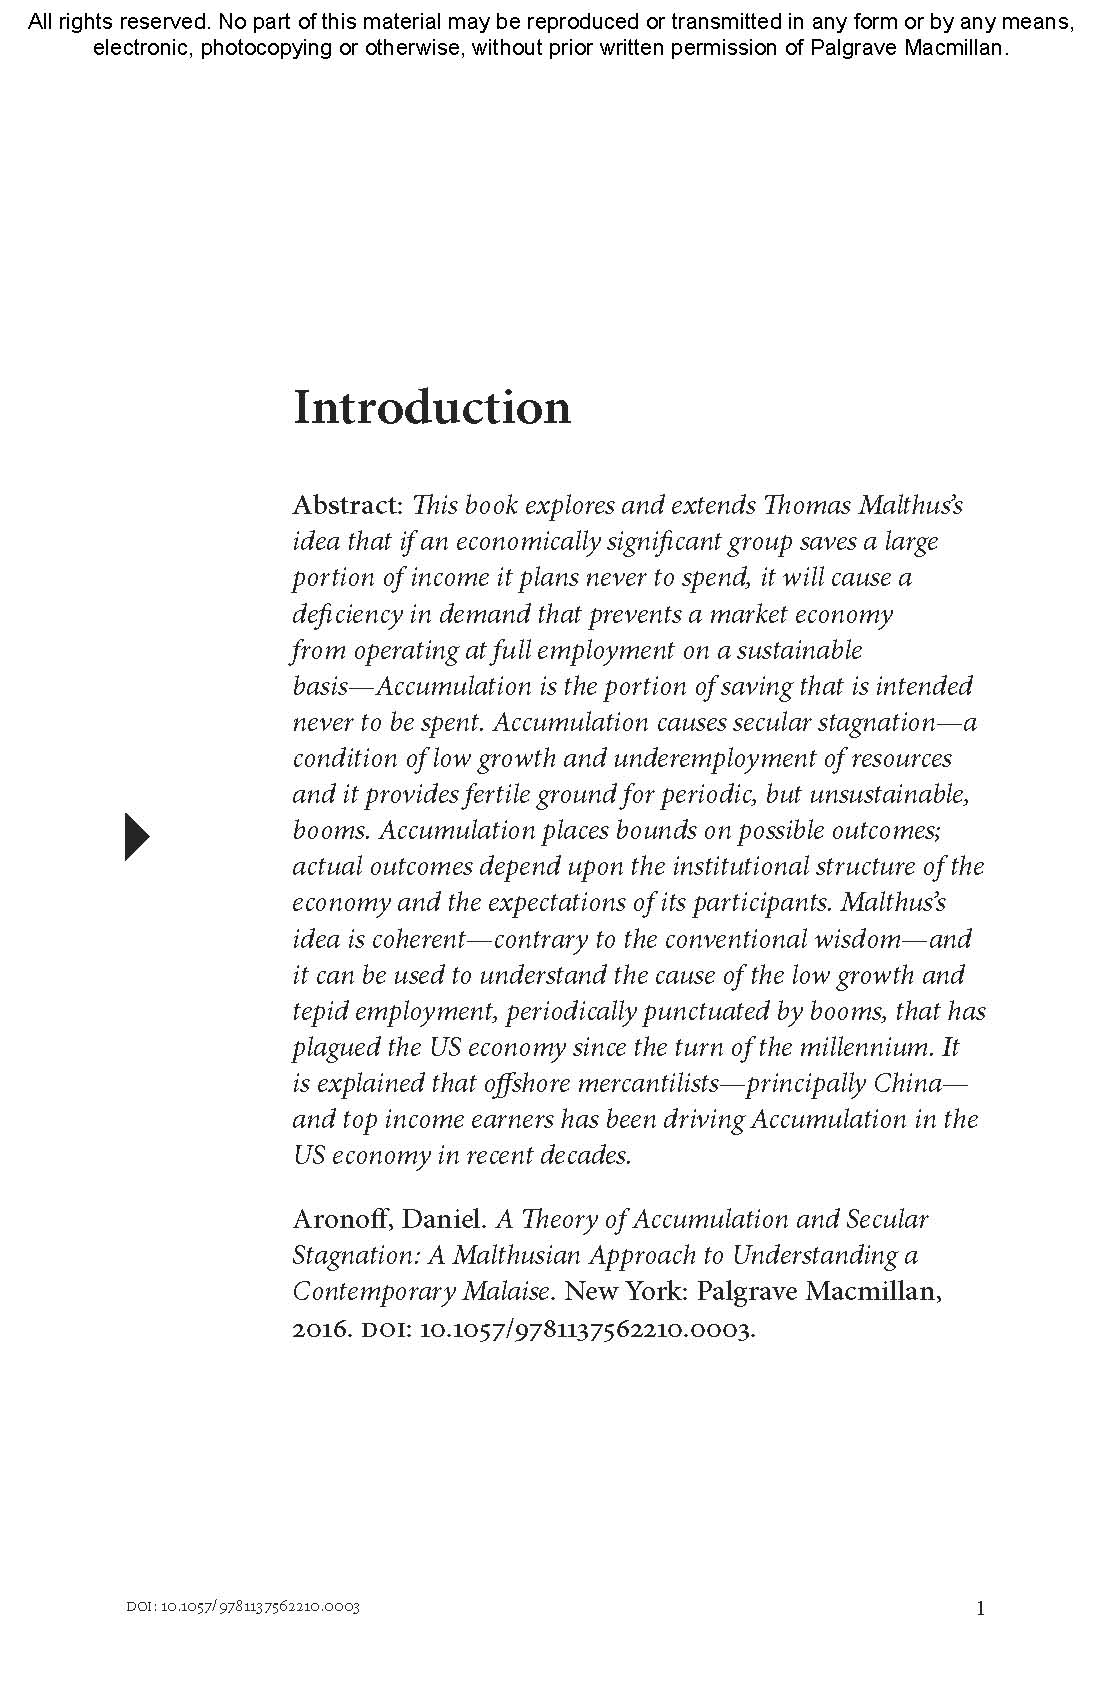 Pages from Accumulation and Secular Stagnation - pdf published book-2_Page_07.jpg